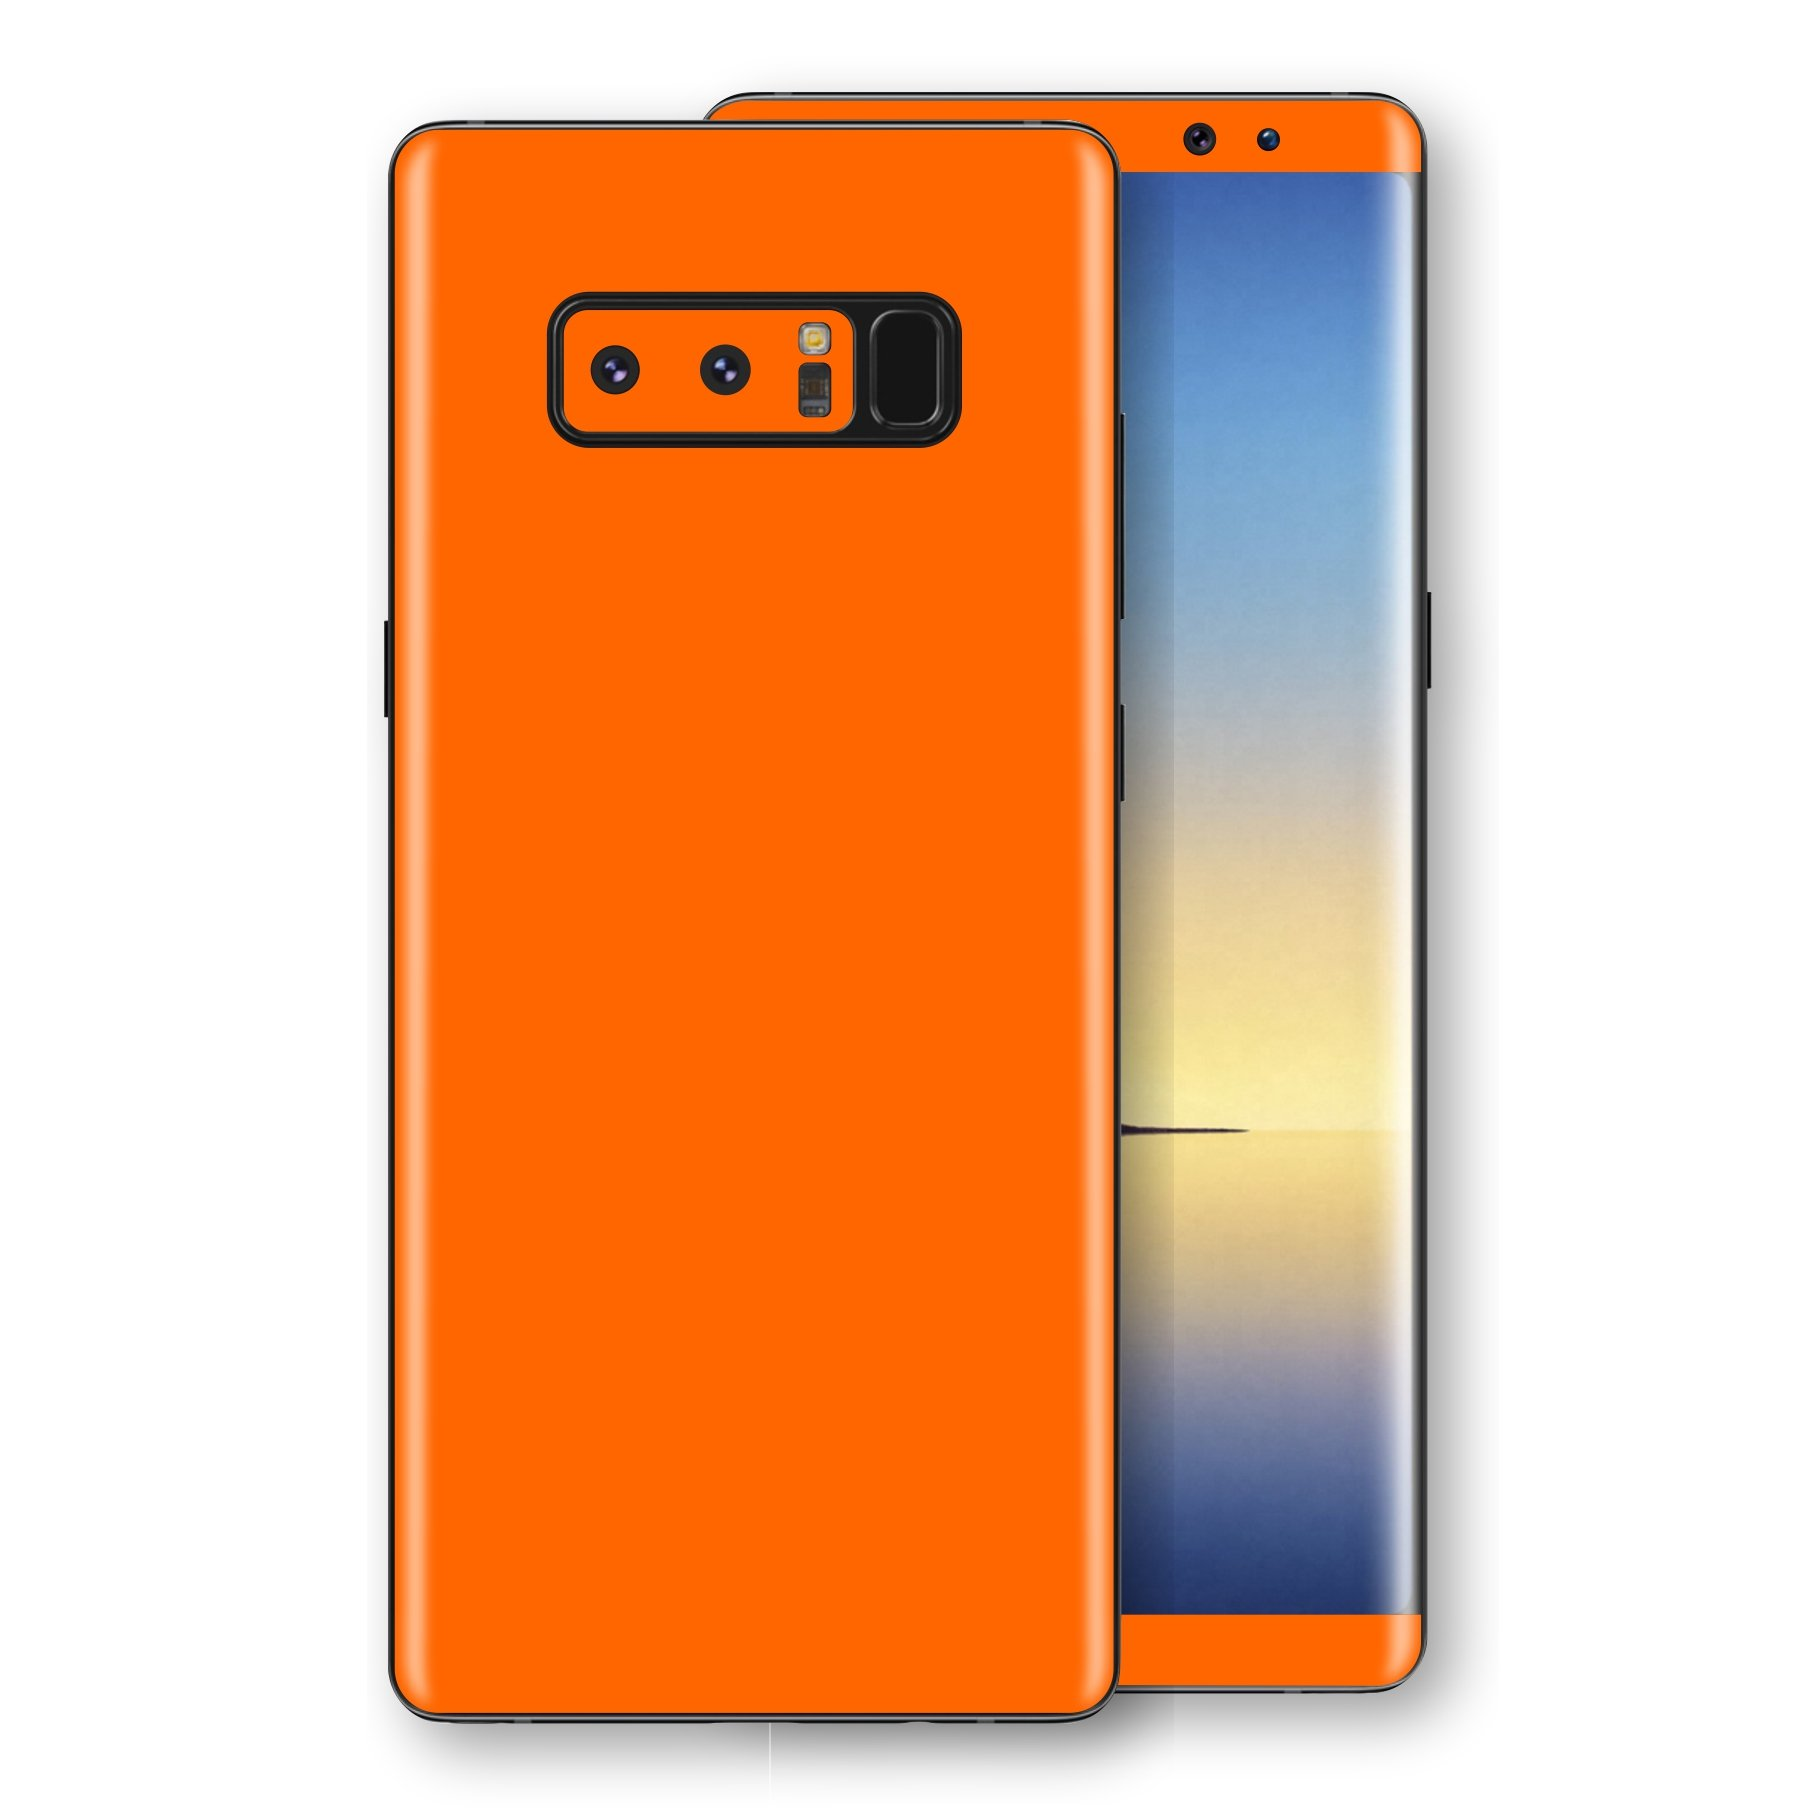 Samsung Galaxy NOTE 8 Orange Glossy Gloss Finish Skin, Decal, Wrap, Protector, Cover by EasySkinz | EasySkinz.com